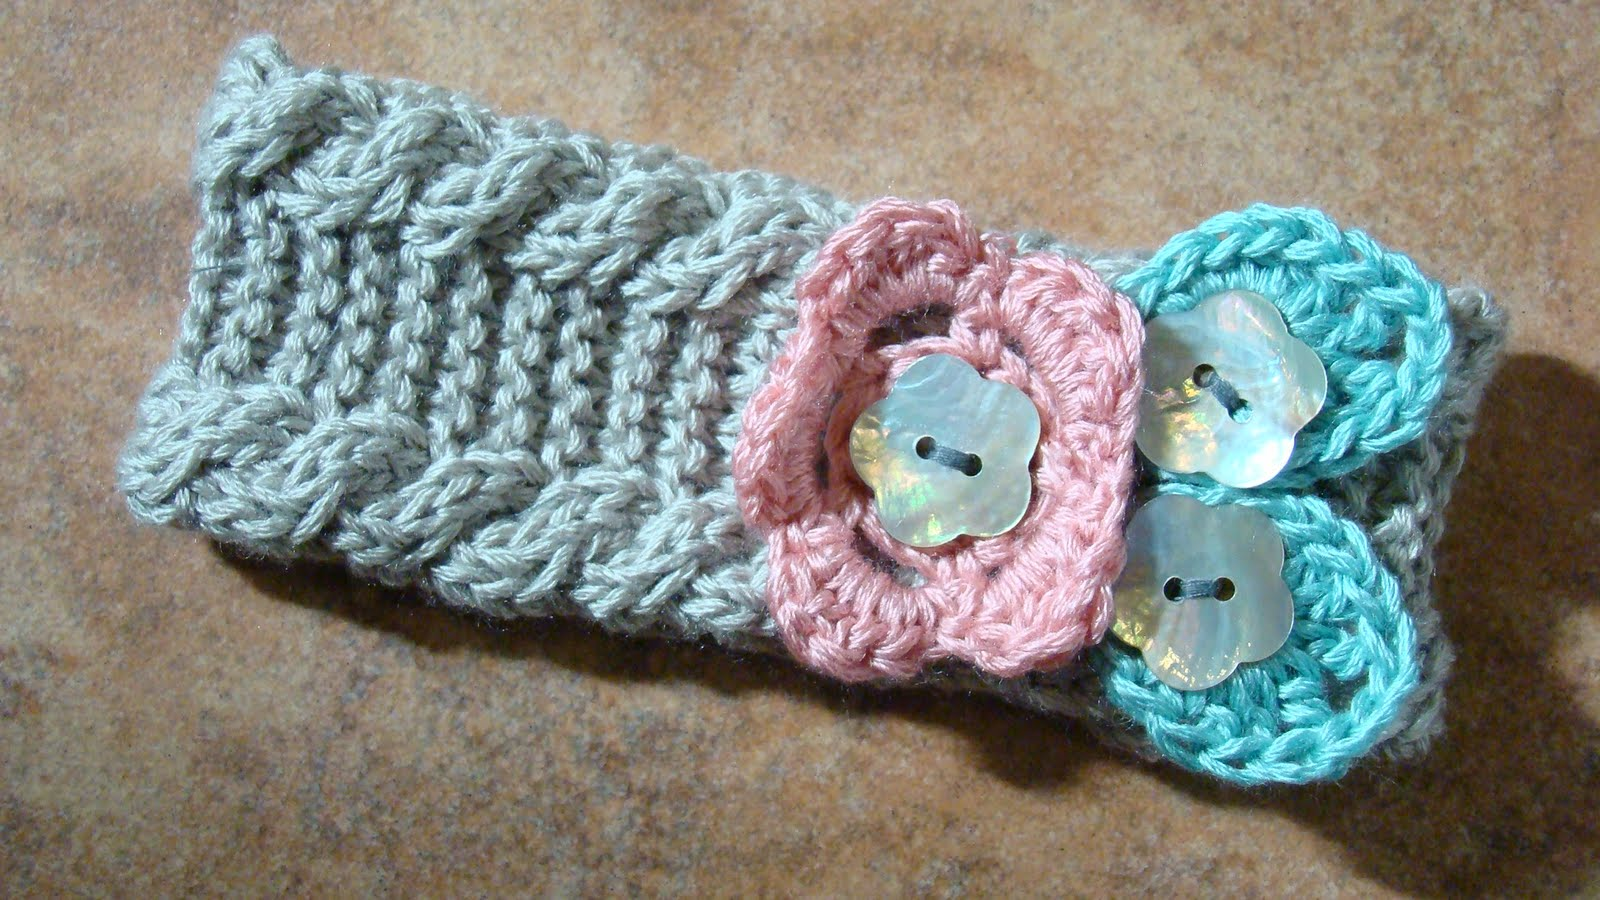 Knitted Baby Headband Pattern Easy : Crafts By Starlight: Knit Infant Winter Headband